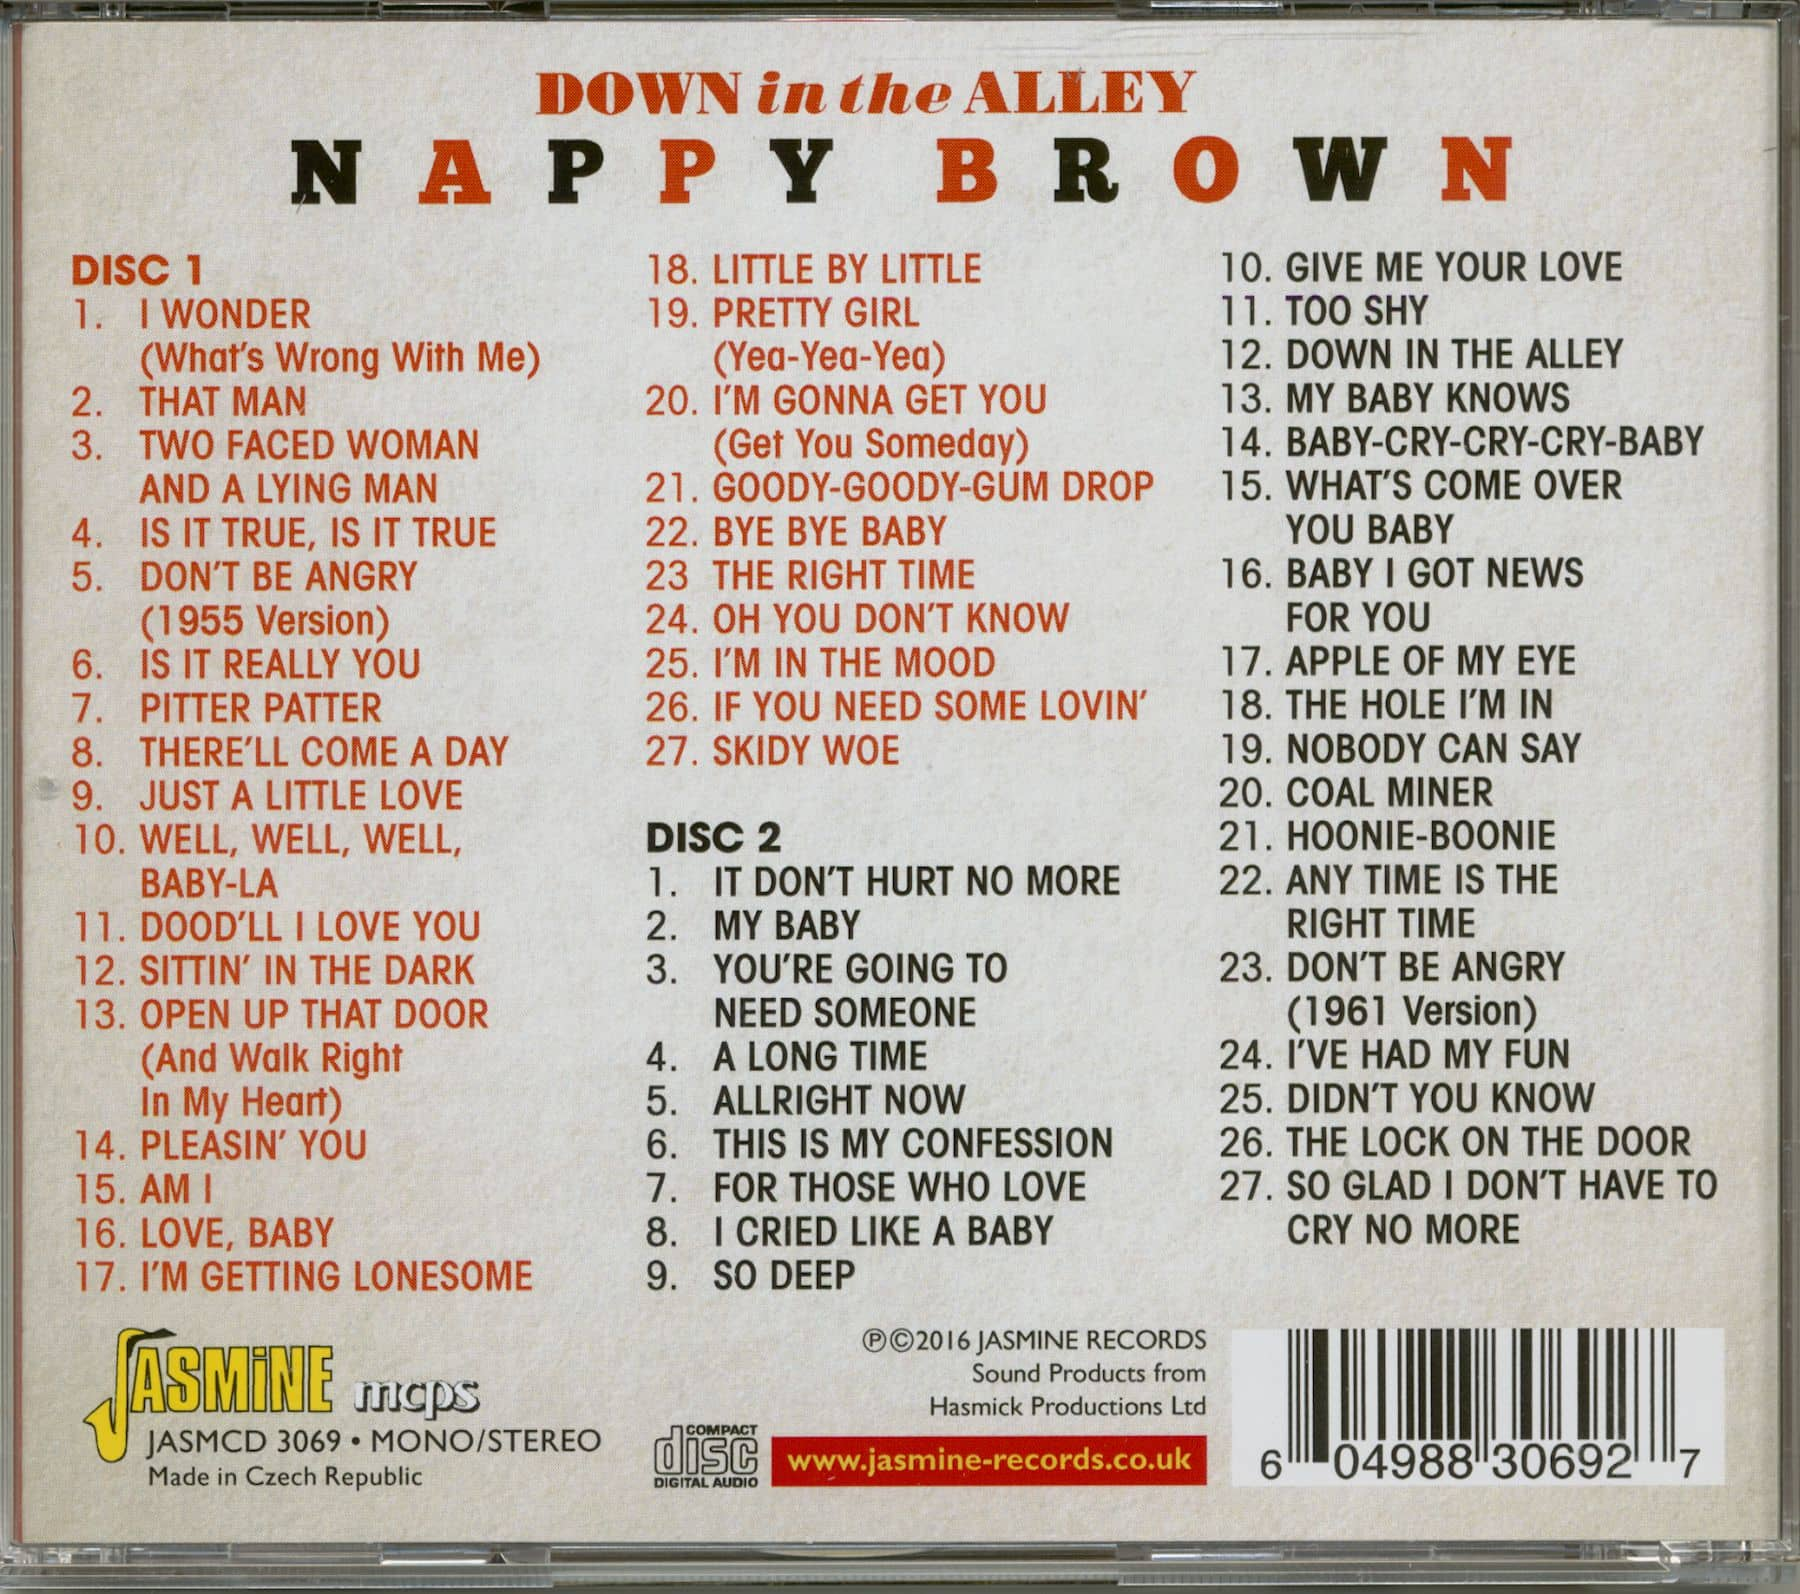 Nappy Brown Down In The Alley - The Comple Savoy Singles (2-CD)